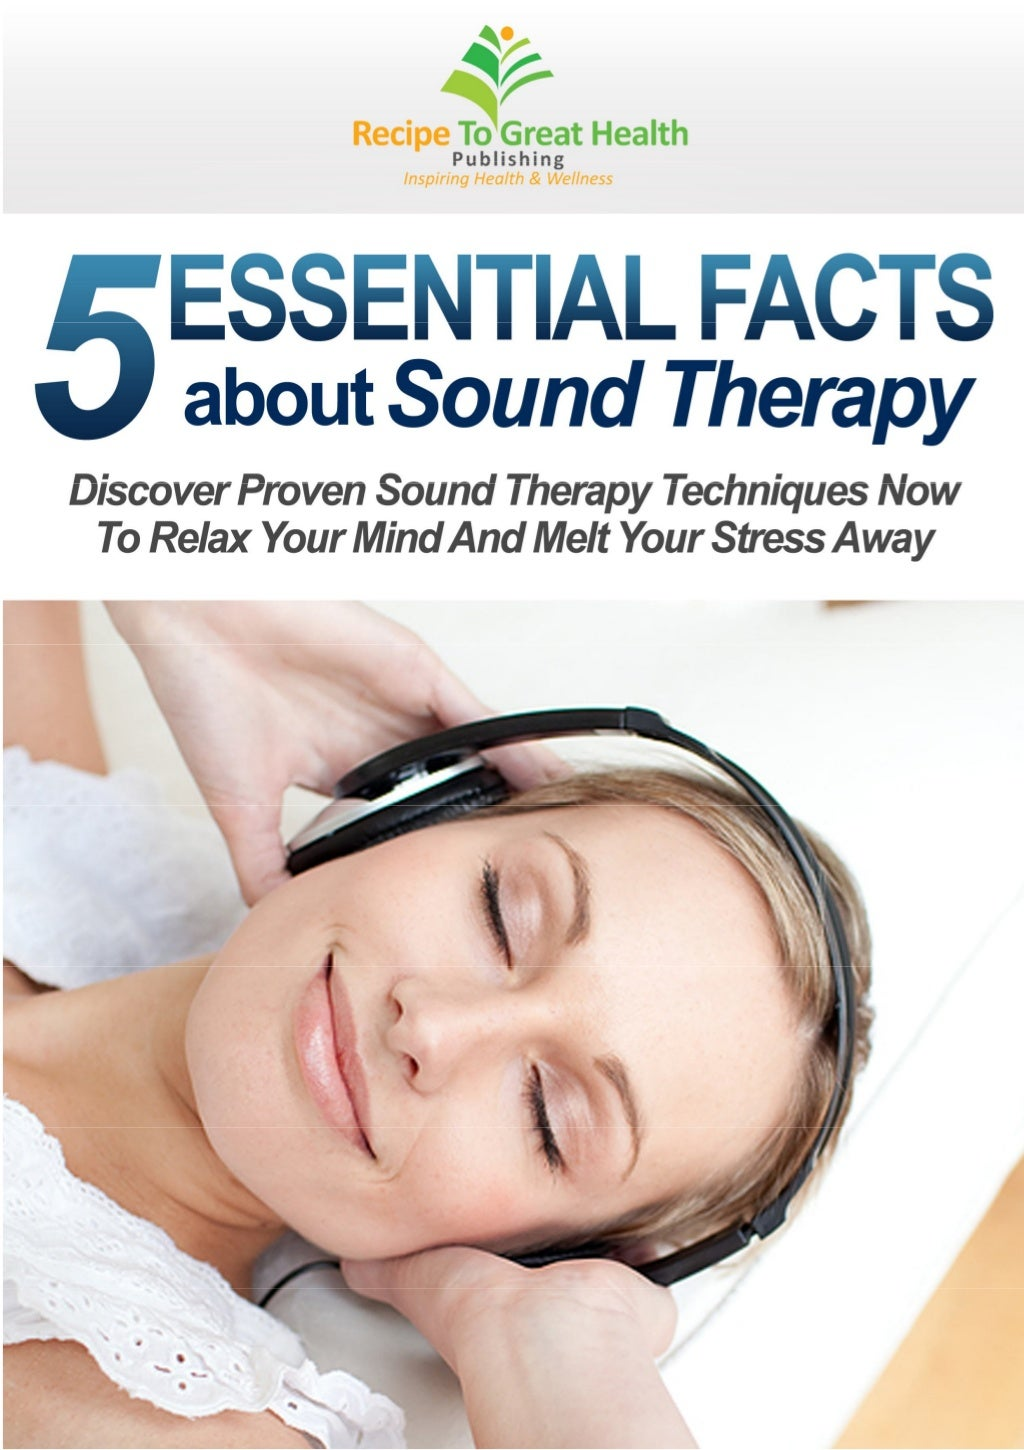 5 Essential Facts About Sound Therapy